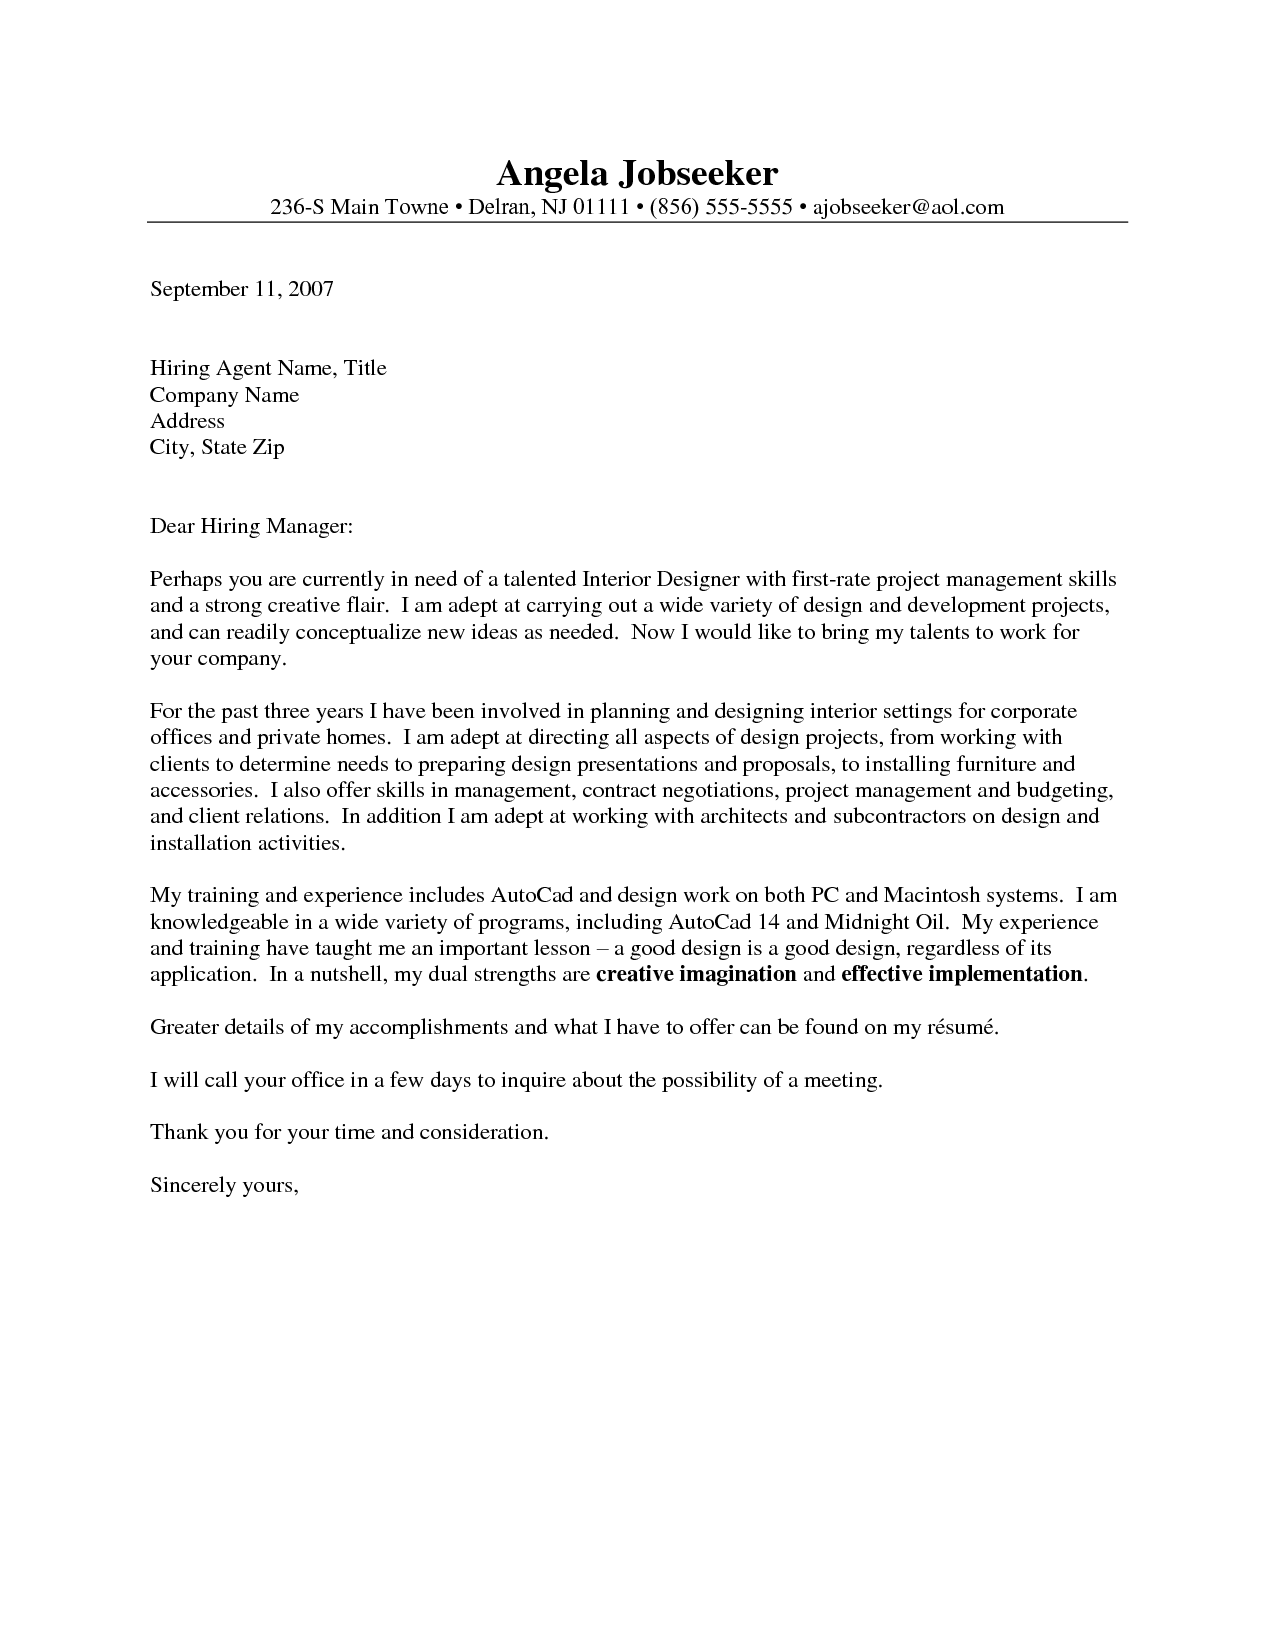 Outstanding Cover Letter Examples | Interior Design Cover Letter Example